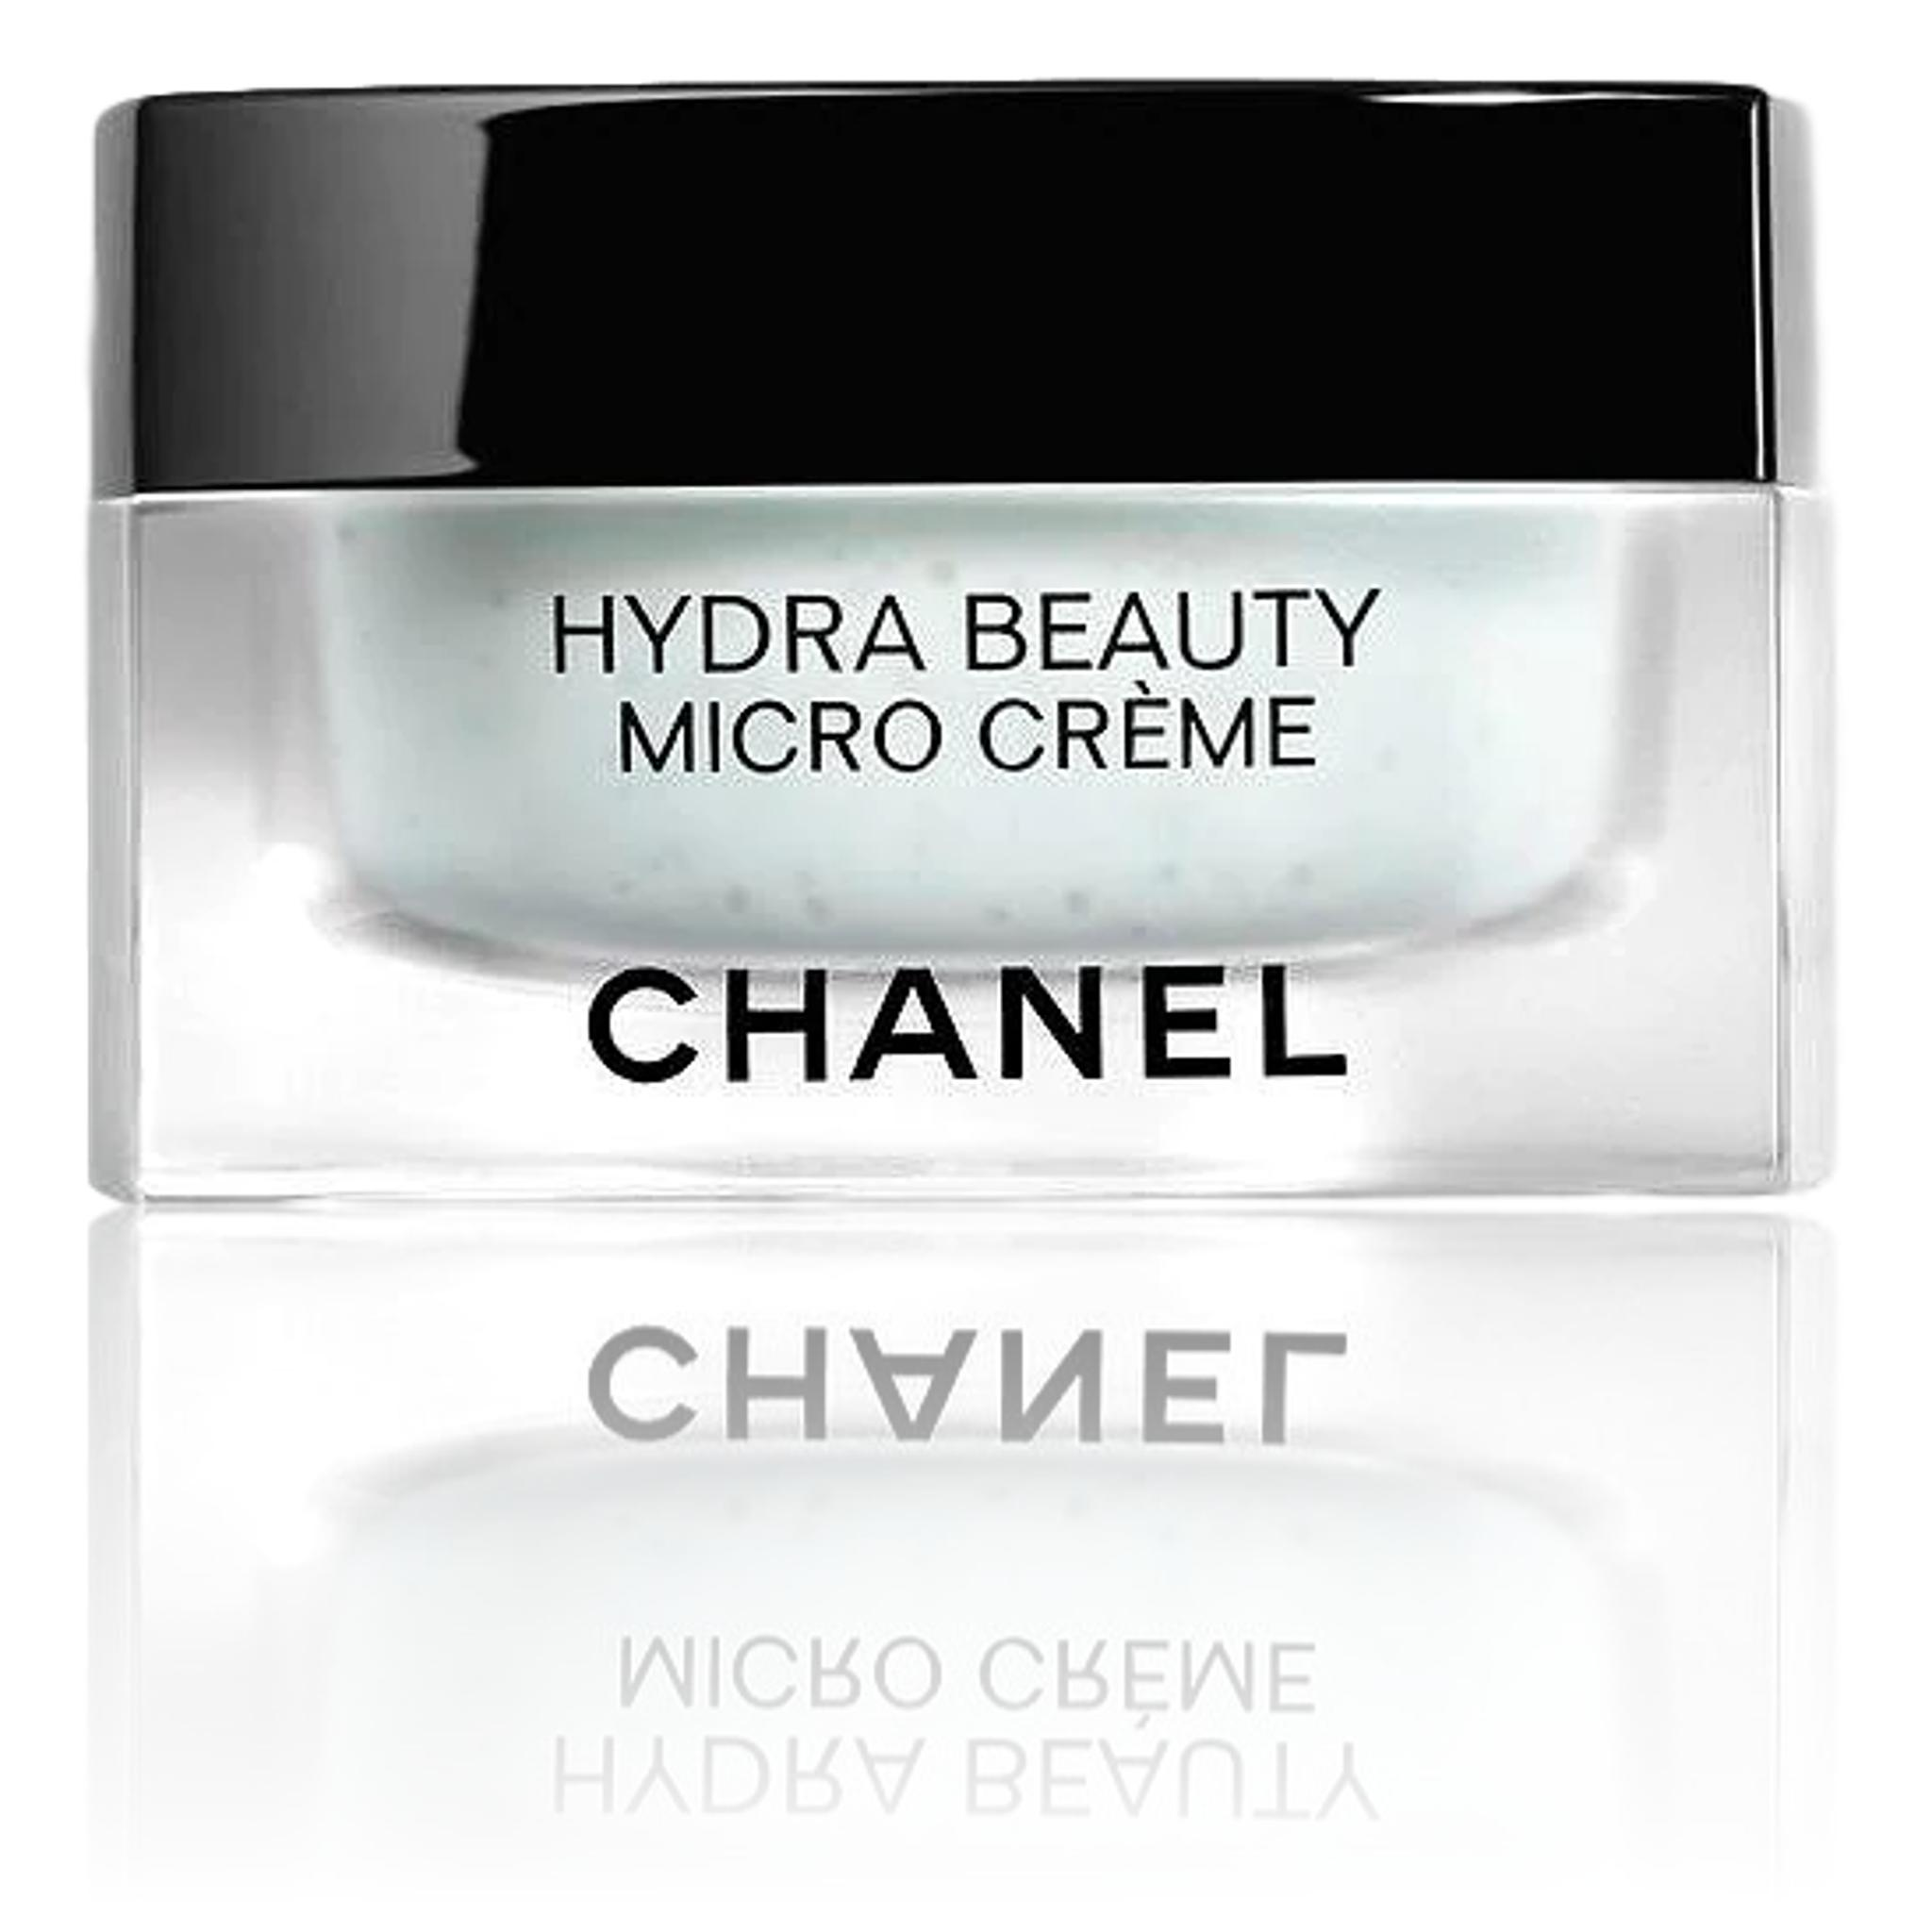 CHANEL Hydra Beauty Micro Crème Fortifying Replenishing Hydration, Skin Care, London Loves Beauty